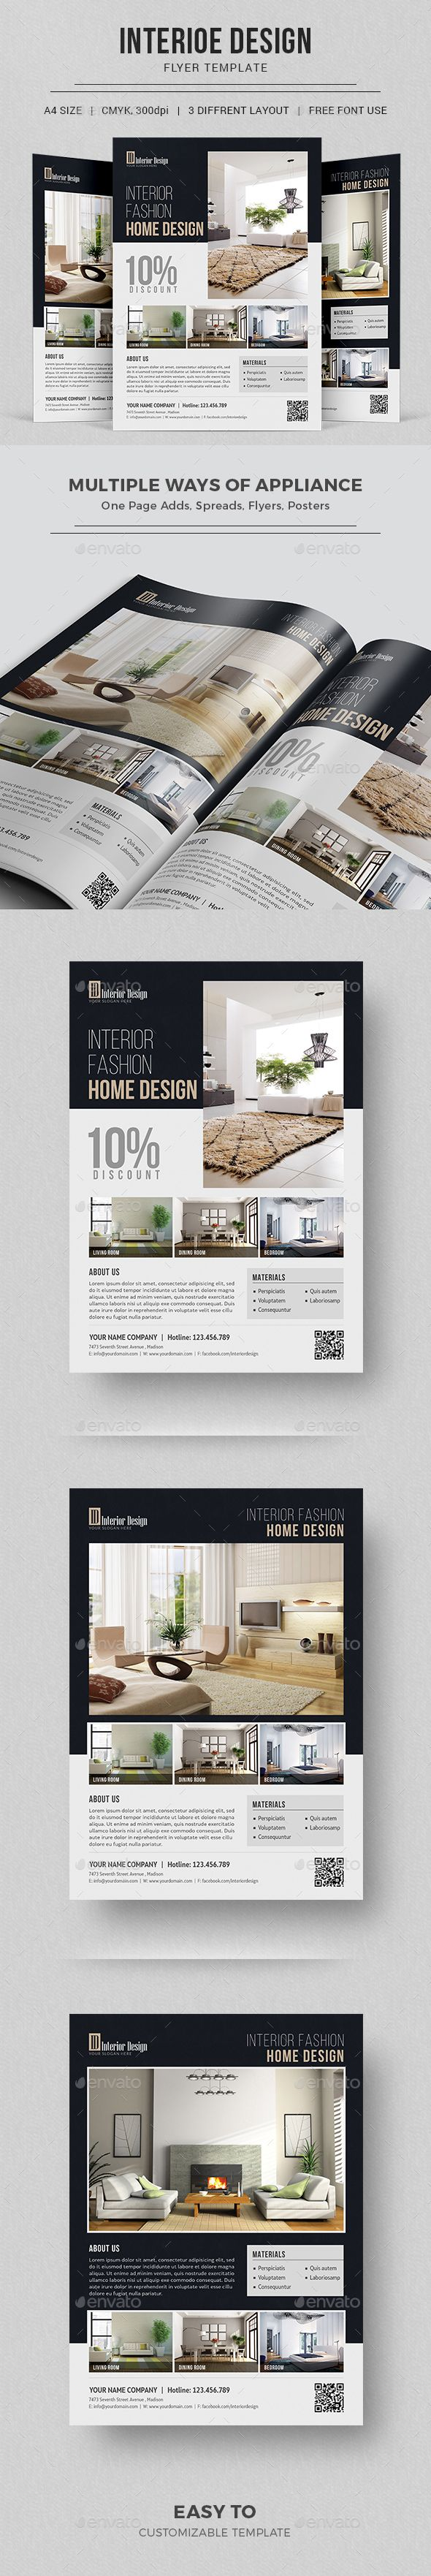 #InteriorDesignFlyer - Interior Design PSD Flyer Template | Interior Decoration Flyer | Instant Download https://graphicriver.net/item/interior-design-flyer/17620430?ref=themedevisers